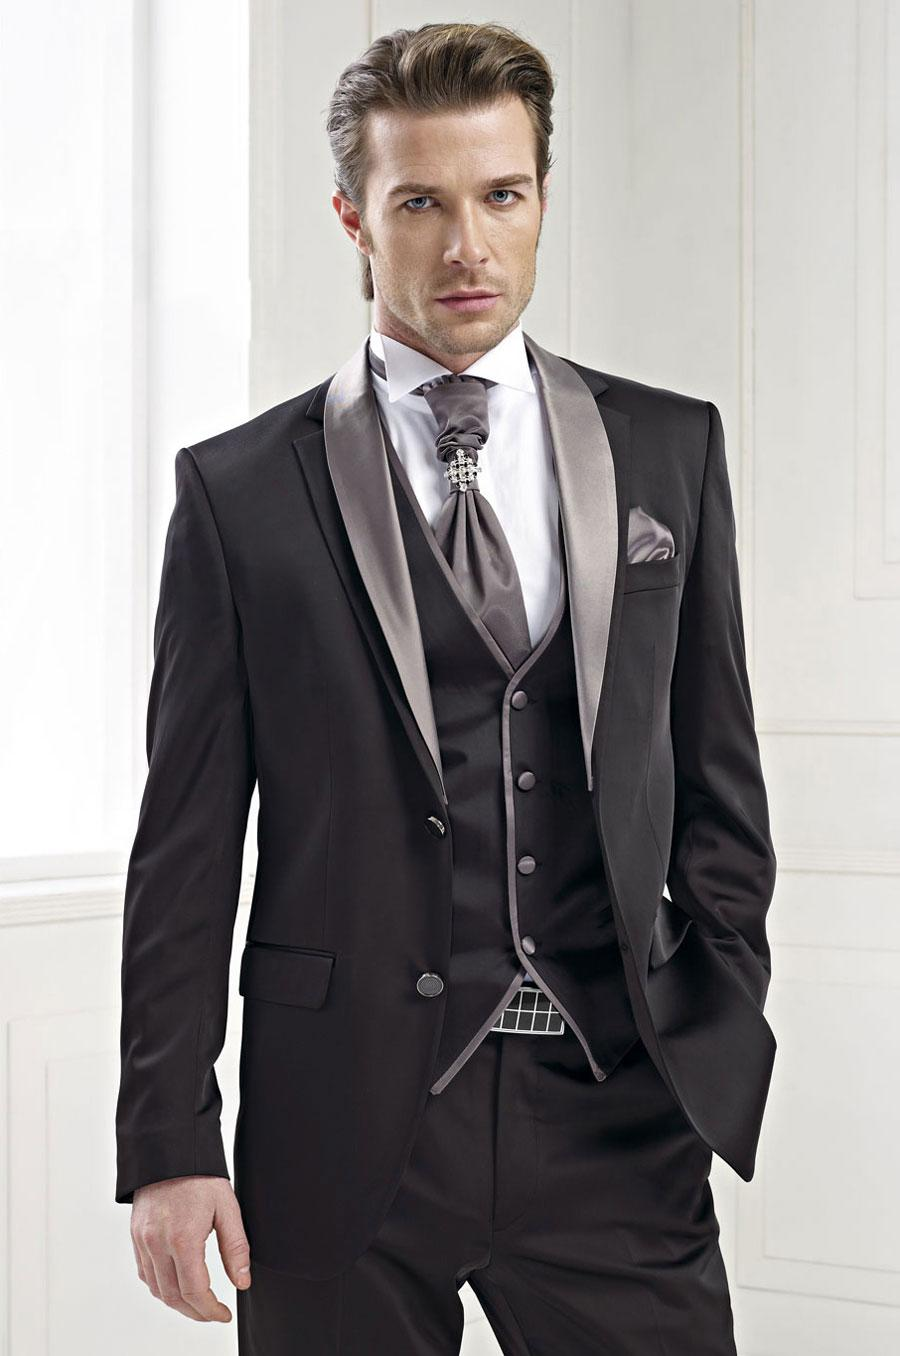 Men Suits 2015 Black Wedding Suits For Men Shawl Lapel Tuxedos ...